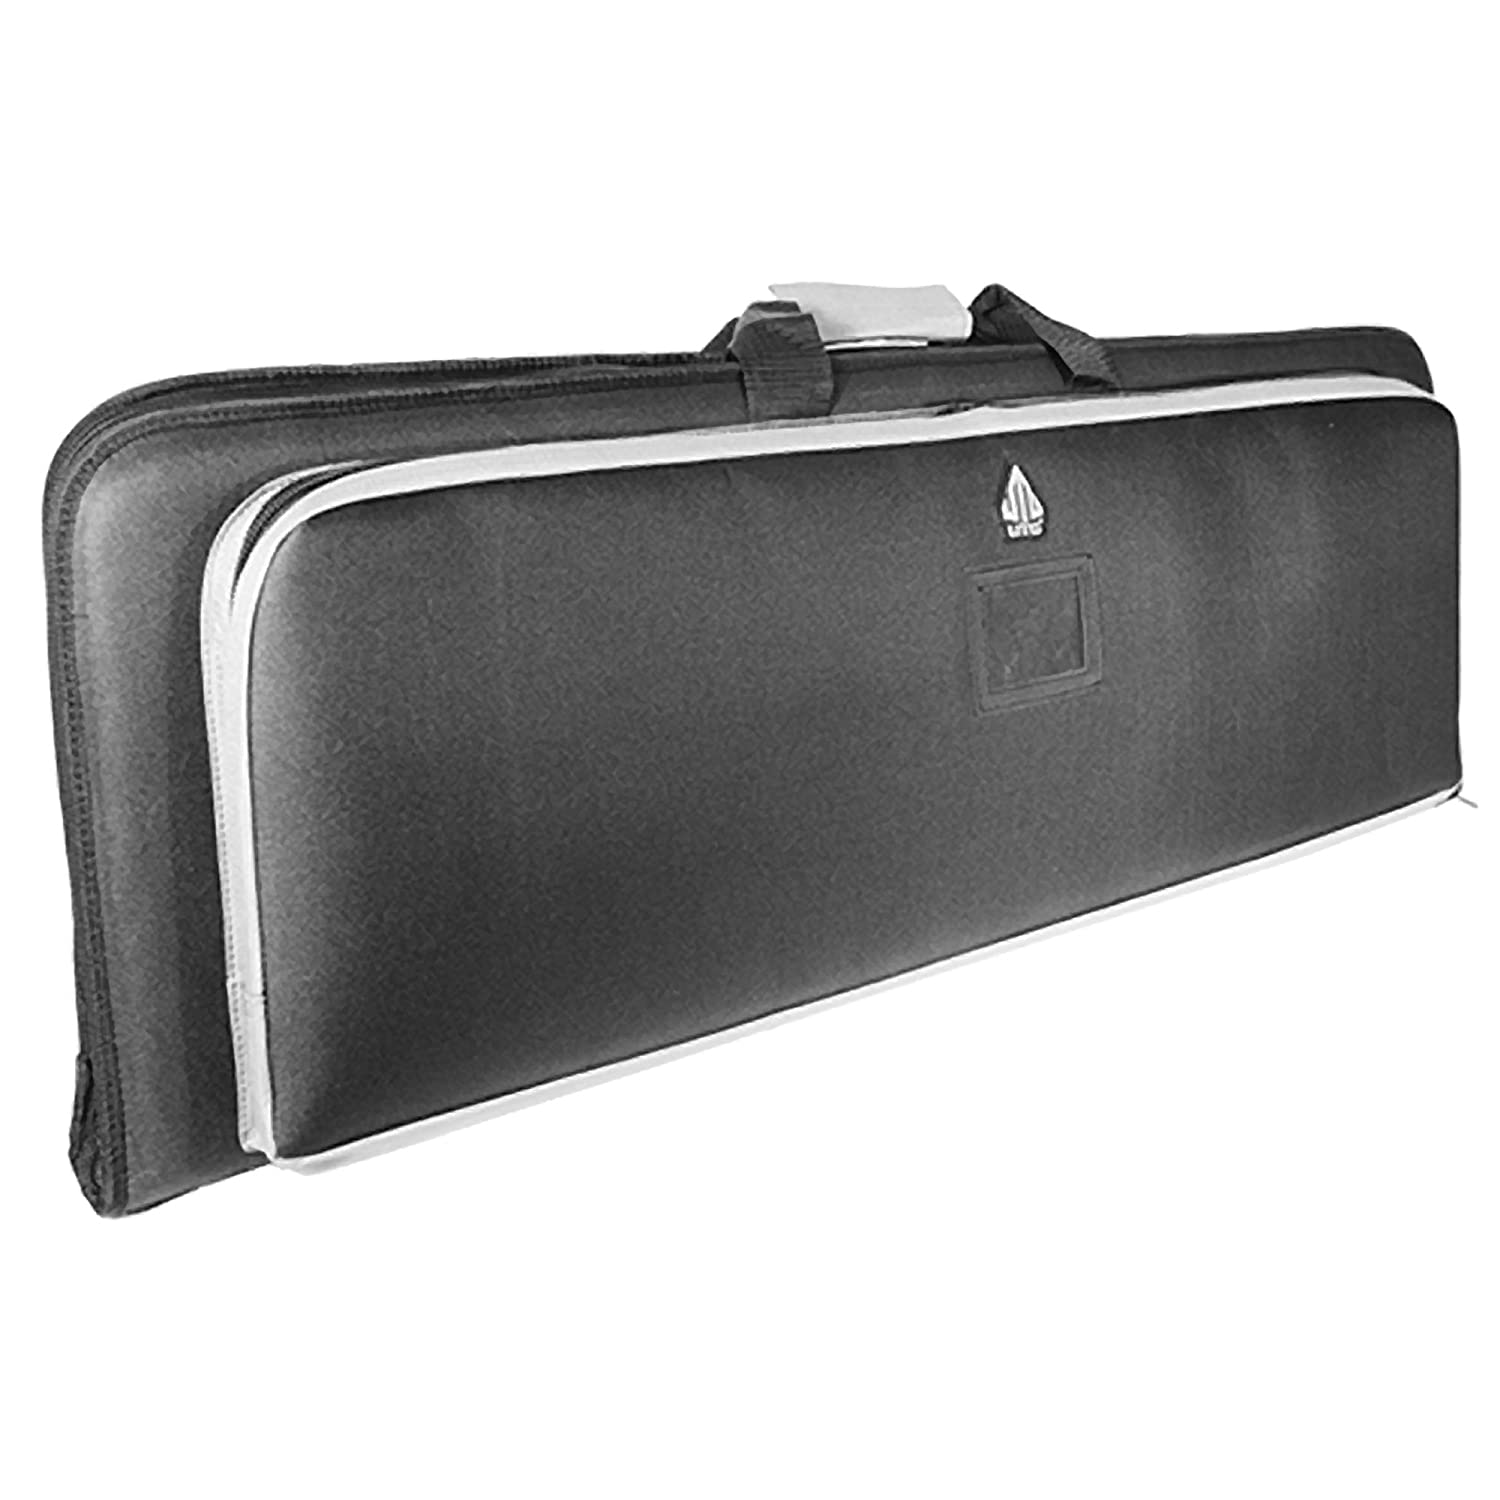 UTG Elite Covert Homeland Security Gun Case LEAPERS INC. PVC-MC42B